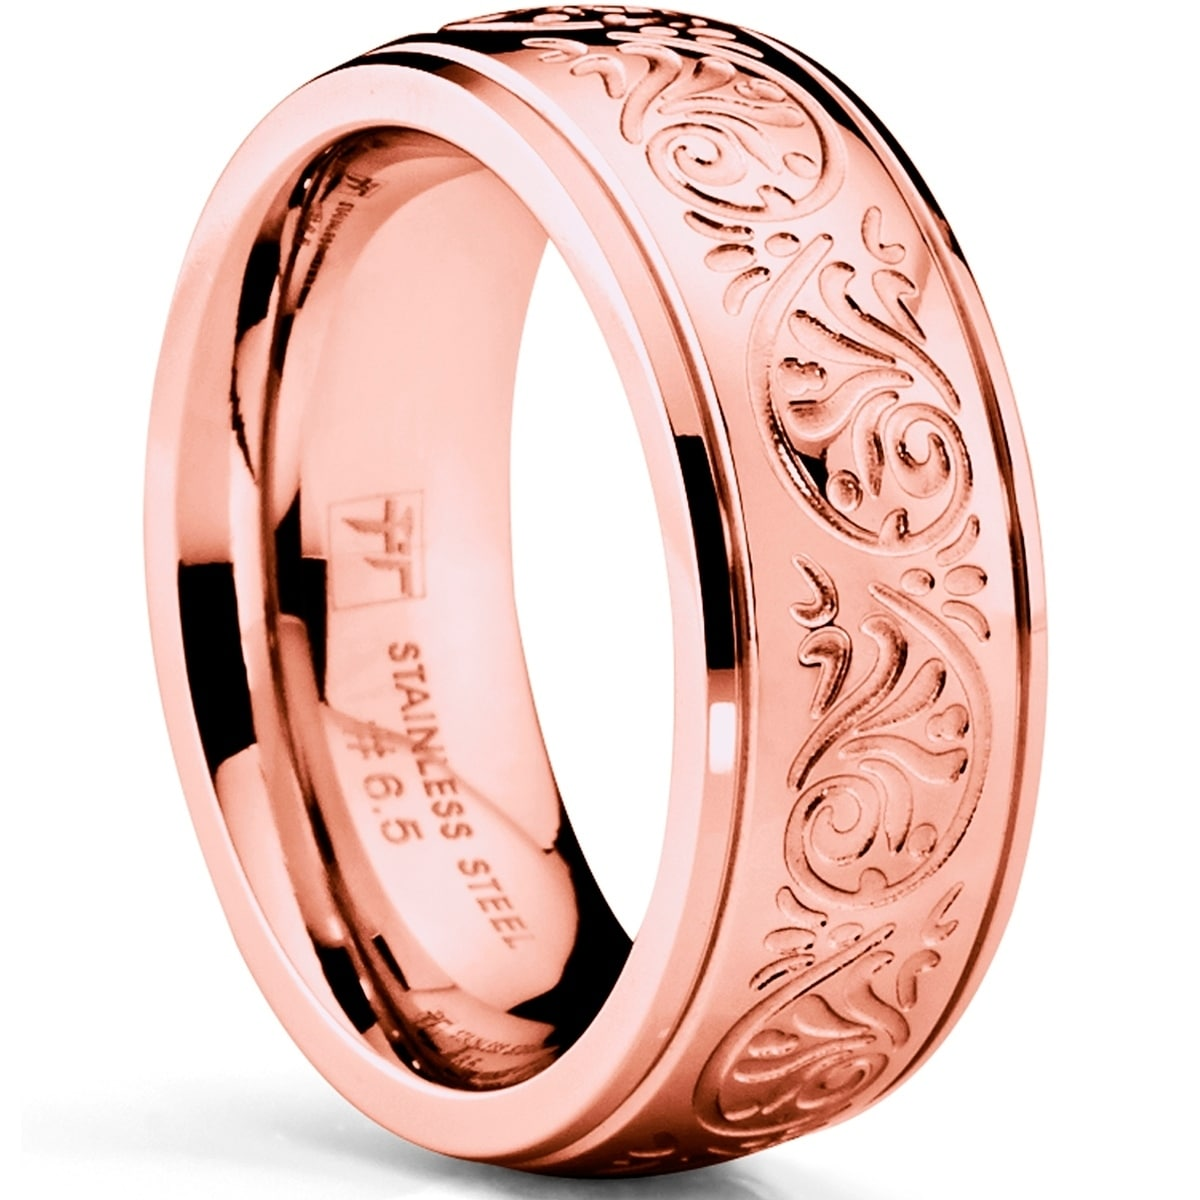 Rose Wedding Rings | Find Great Jewelry Deals Shopping at Overstock.com